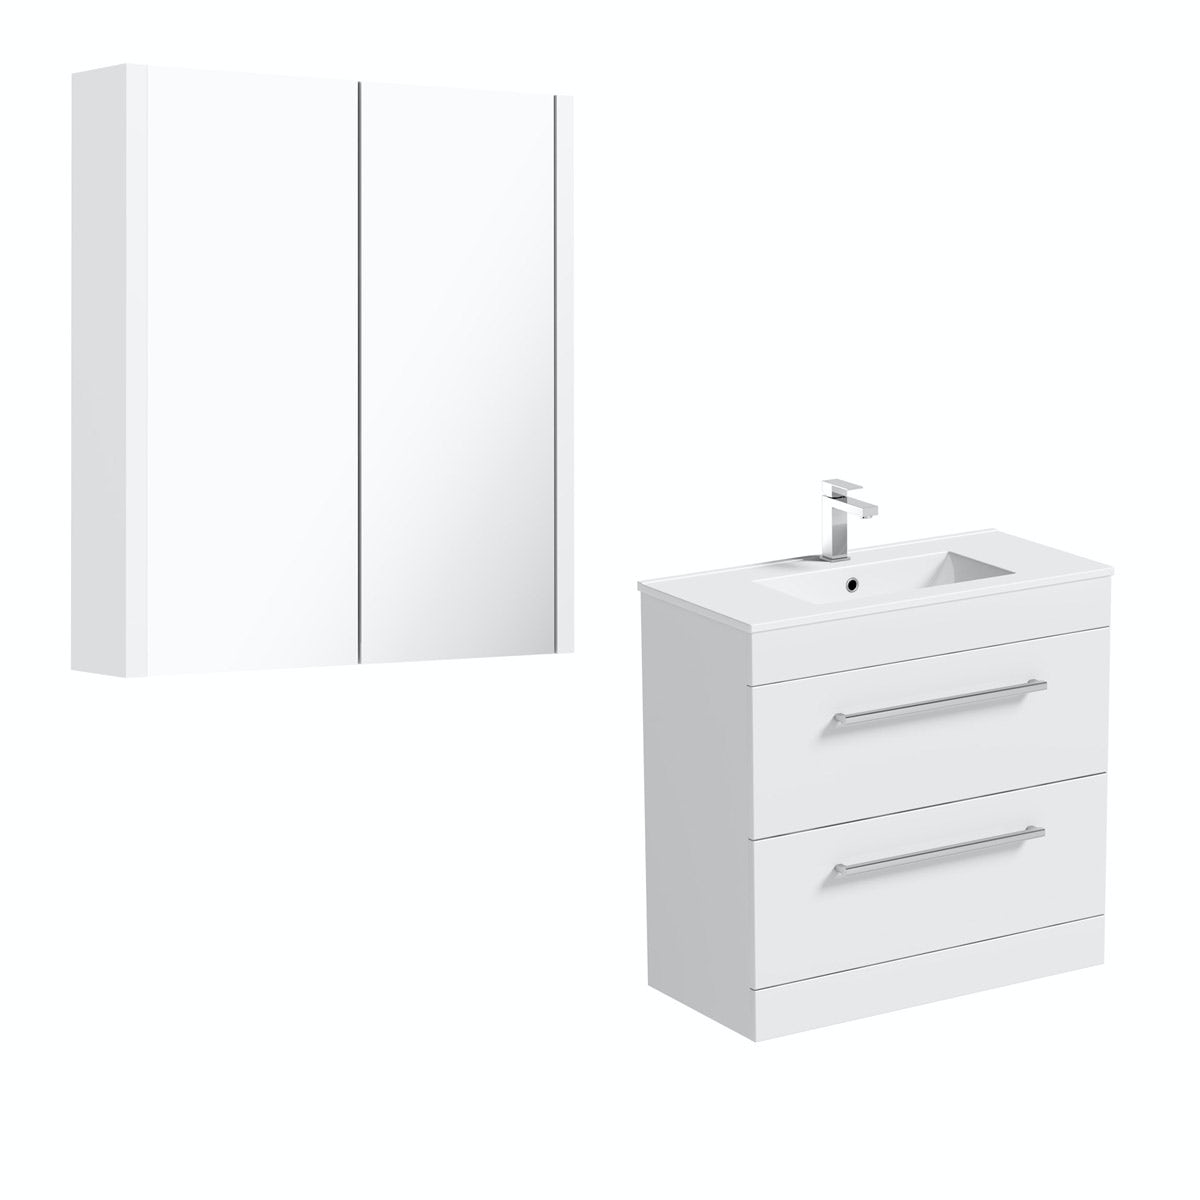 Orchard Derwent white floor drawer unit 800mm and mirror